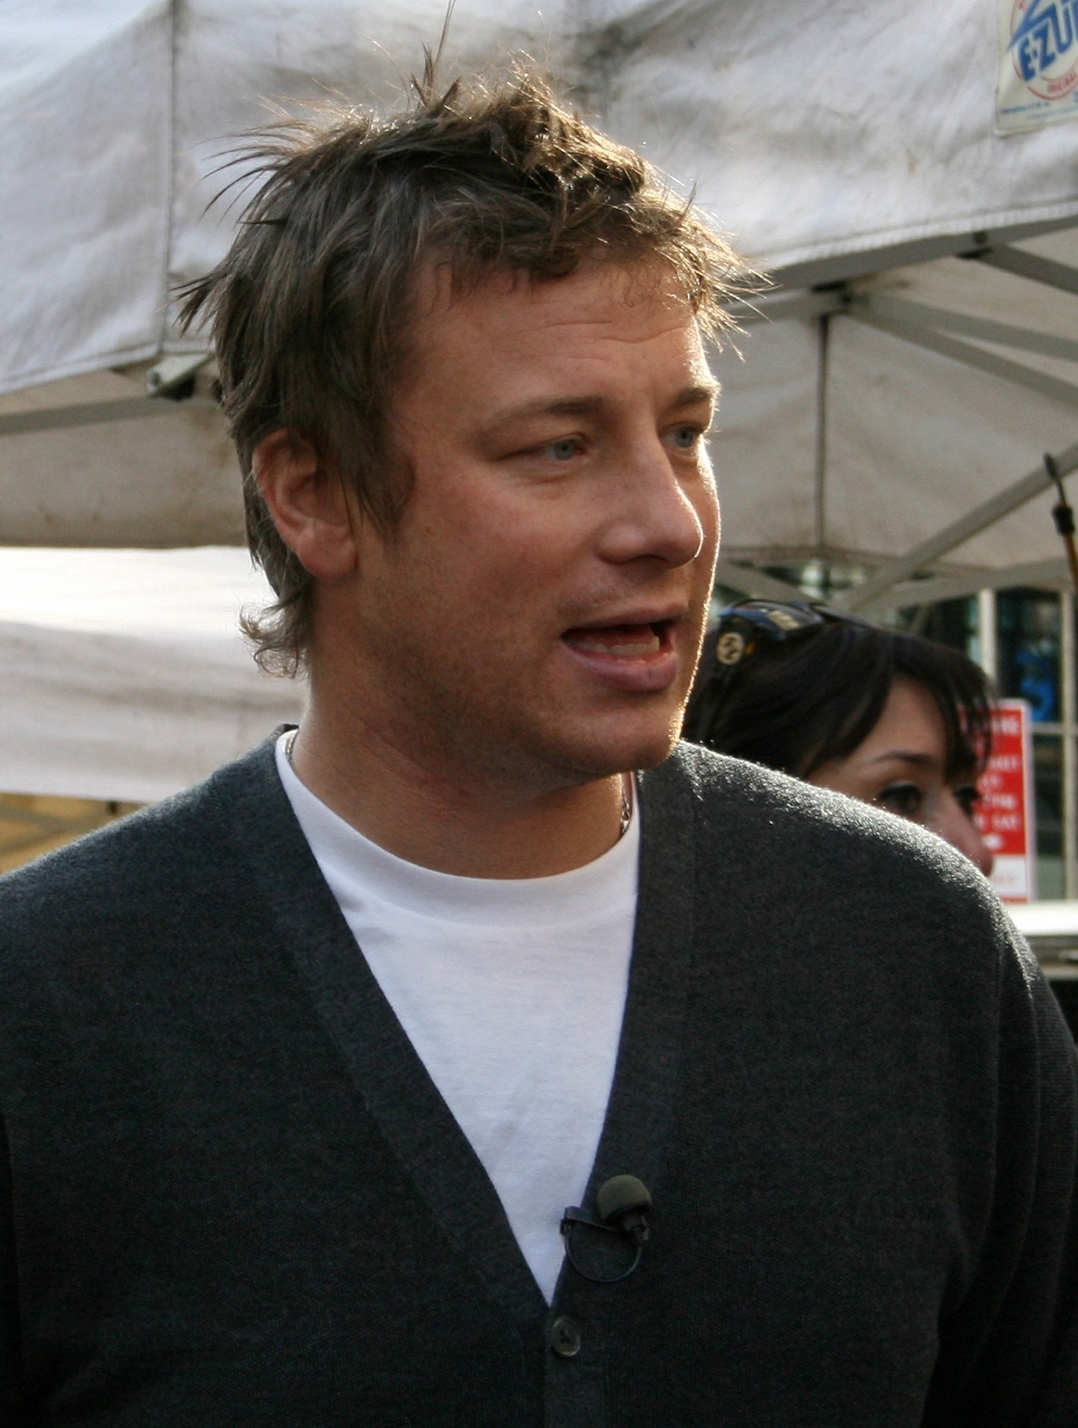 jamie oliver how tall